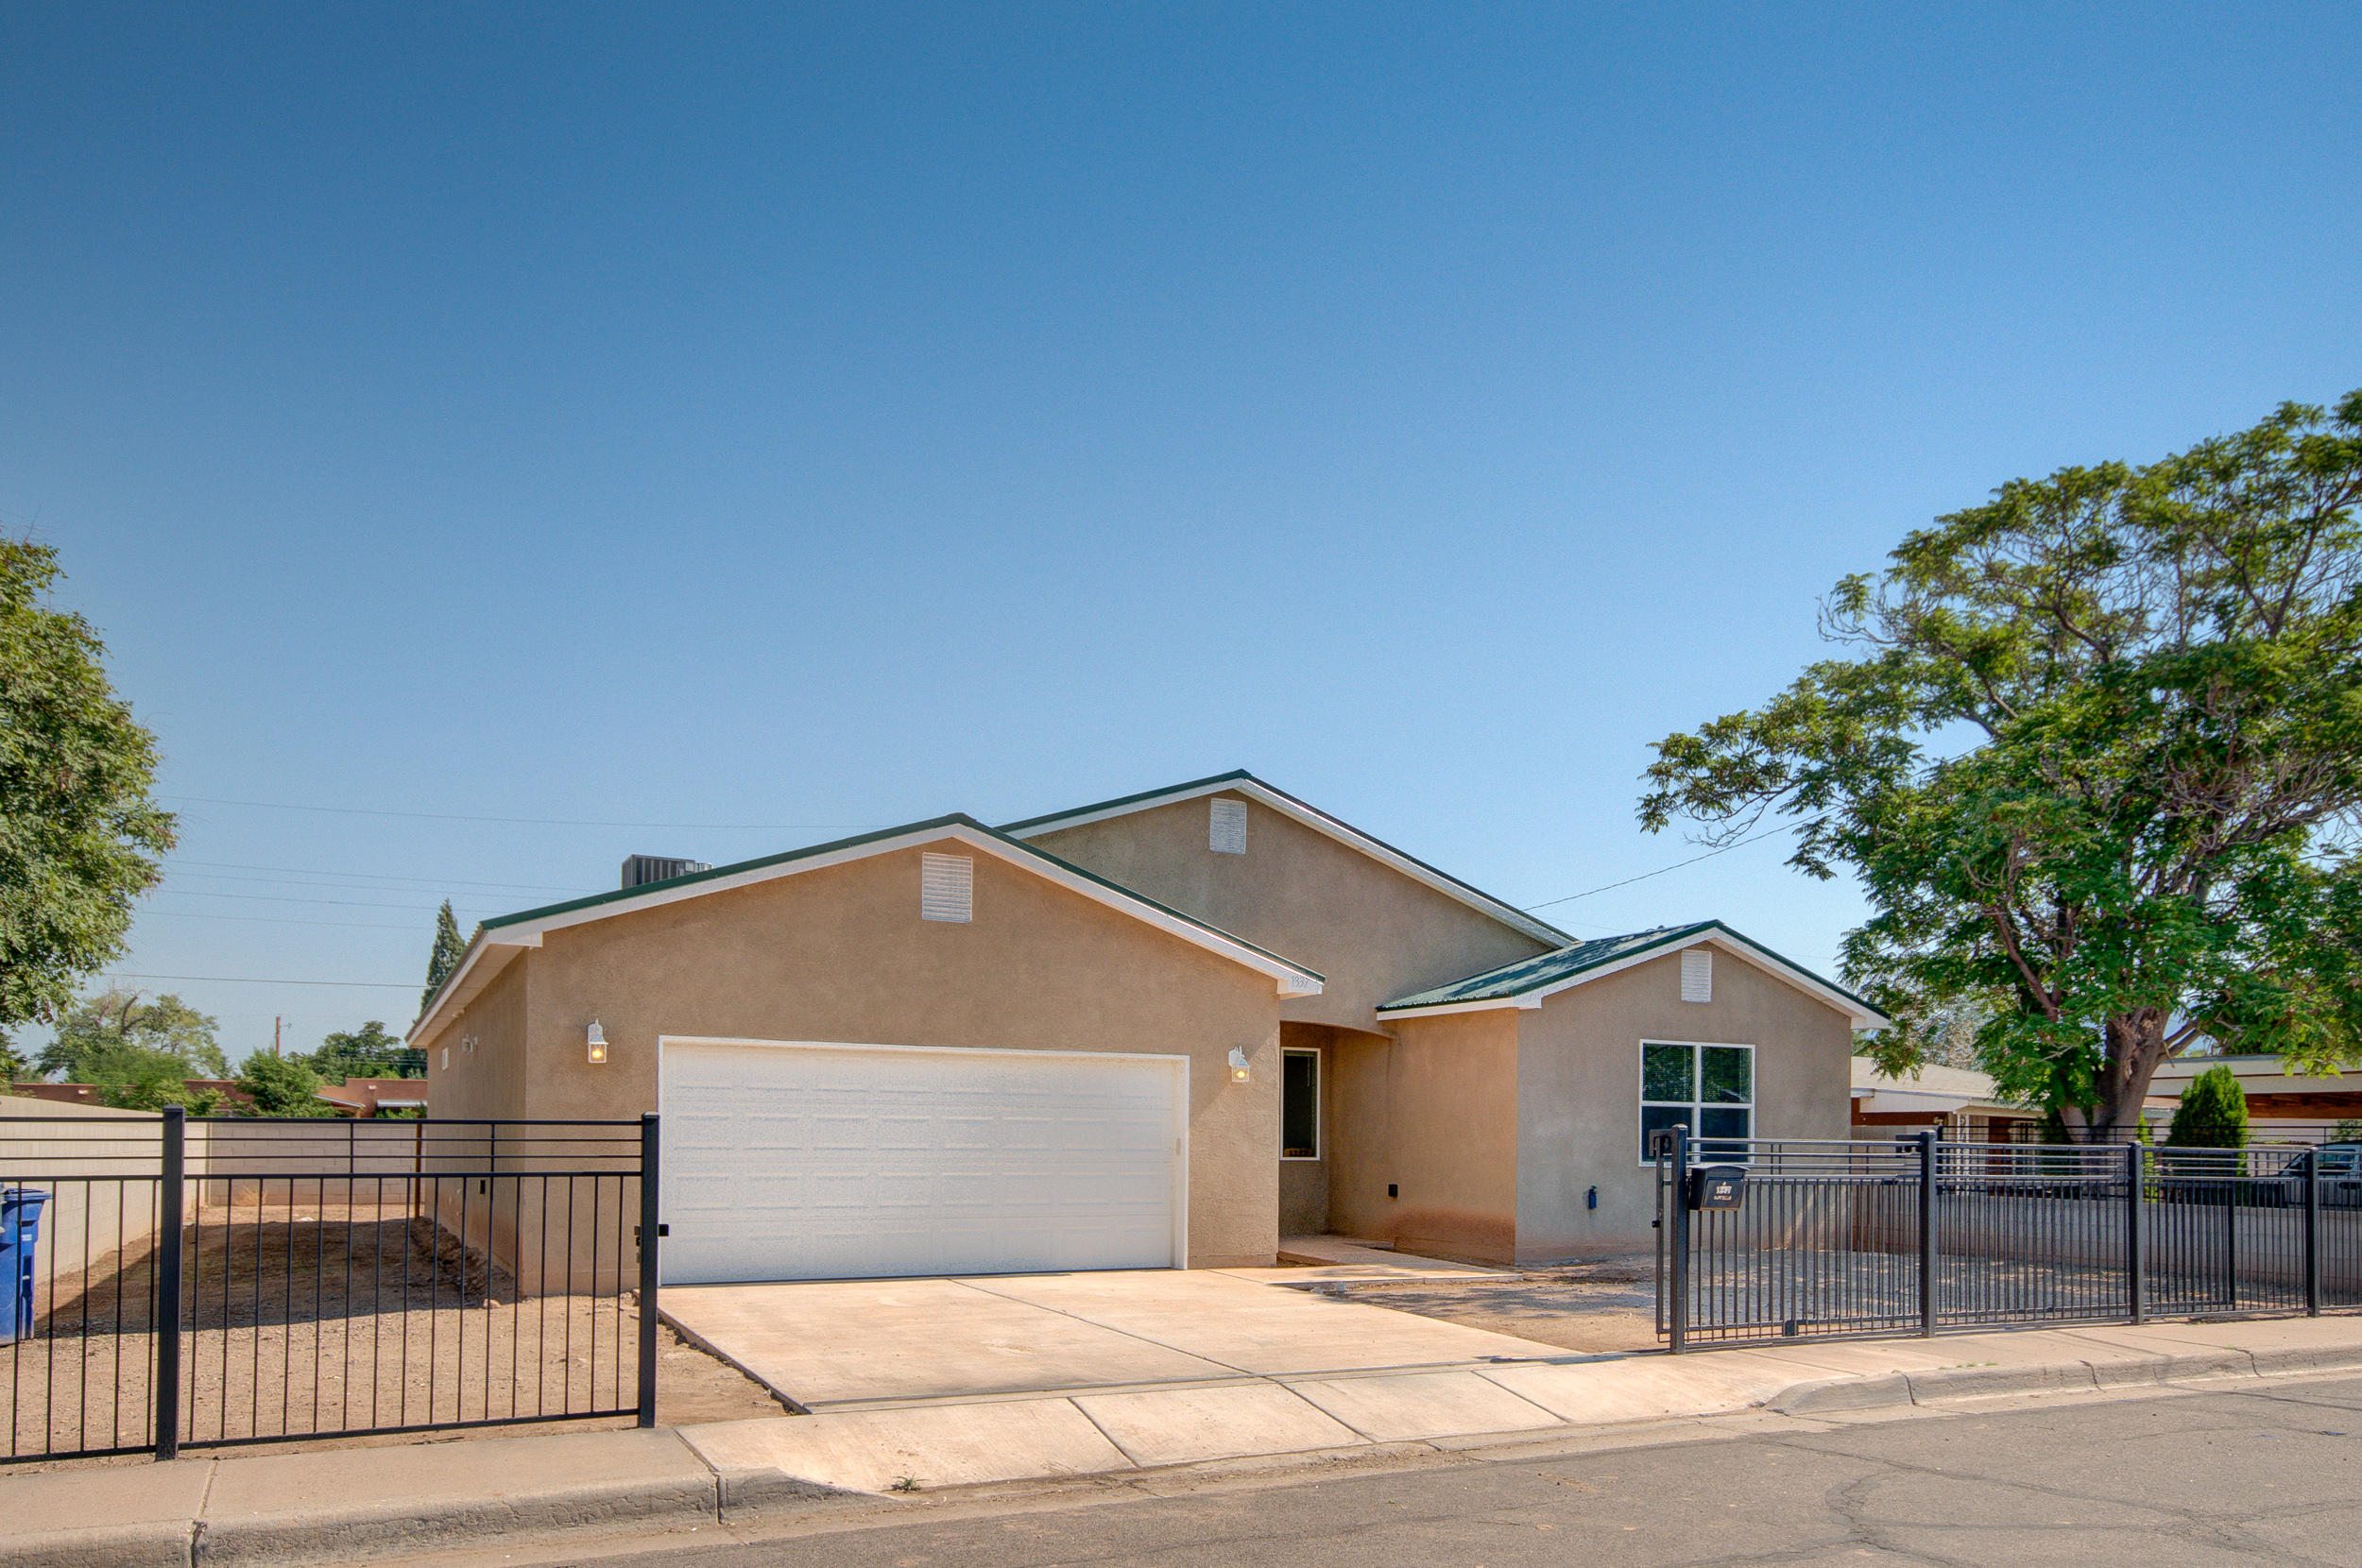 **Huge Price Reduction**Welcome to the North Valley. This newer home was build in 2016. 3 Bedrooms, 2 Baths and a 2 Car Garage located on a quiet cut-de-sac location. The entire property is fenced/gated for security, possible backyard access. Large open greatroom, formal dining area, kitchen island, stainless steel appliances. The master bedroom is HUGE, double sinks, large walk-in closets. You have a blank slate for your landscaping ideas. This home is GREAT!